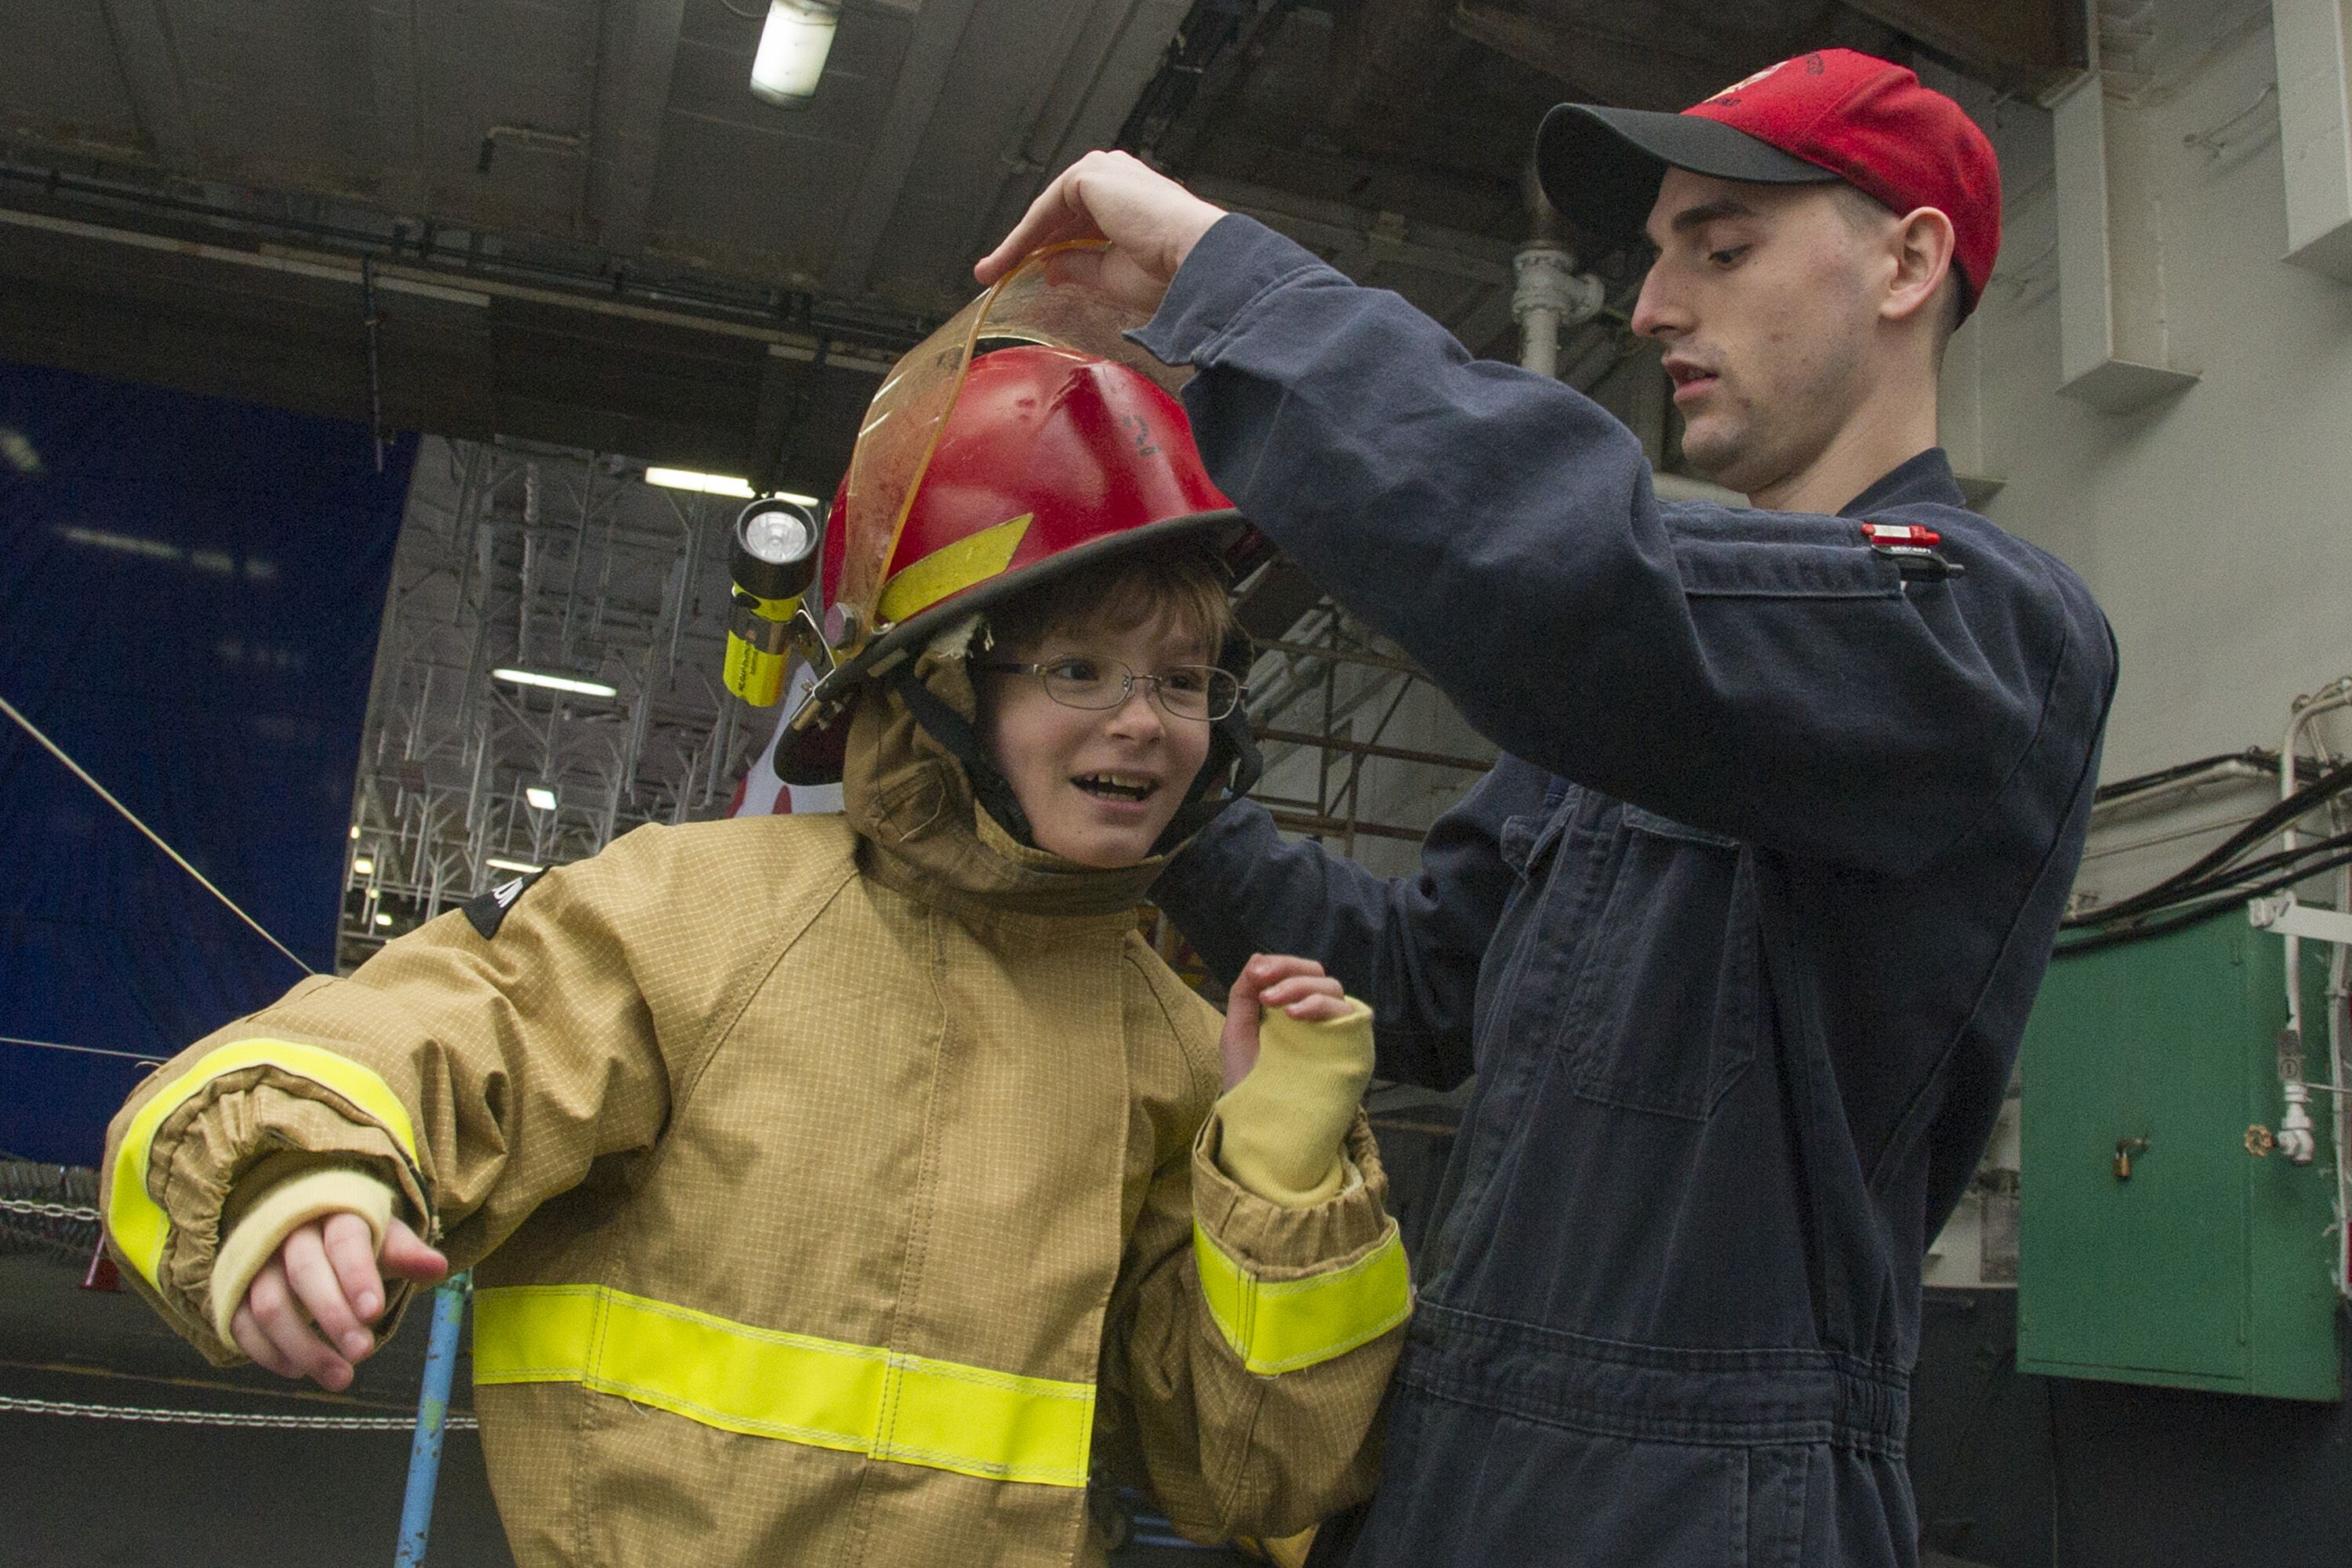 YOKOSUKA, Japan (April 2, 2015) Damage Controlman 2nd Class William Burkett, from Croydon, Pa., helps a 6th grade student at Yokosuka Middle School don firefighting gear during the annual Science Technology, Engineering and Math (STEM) conference aboard the Nimitz-class aircraft carrier USS George Washington (CVN 73). George Washington and its embarked air wing, Carrier Air Wing (CVW) 5, provide a combat-ready force that protects and defends the collective maritime interests of the U.S. and…